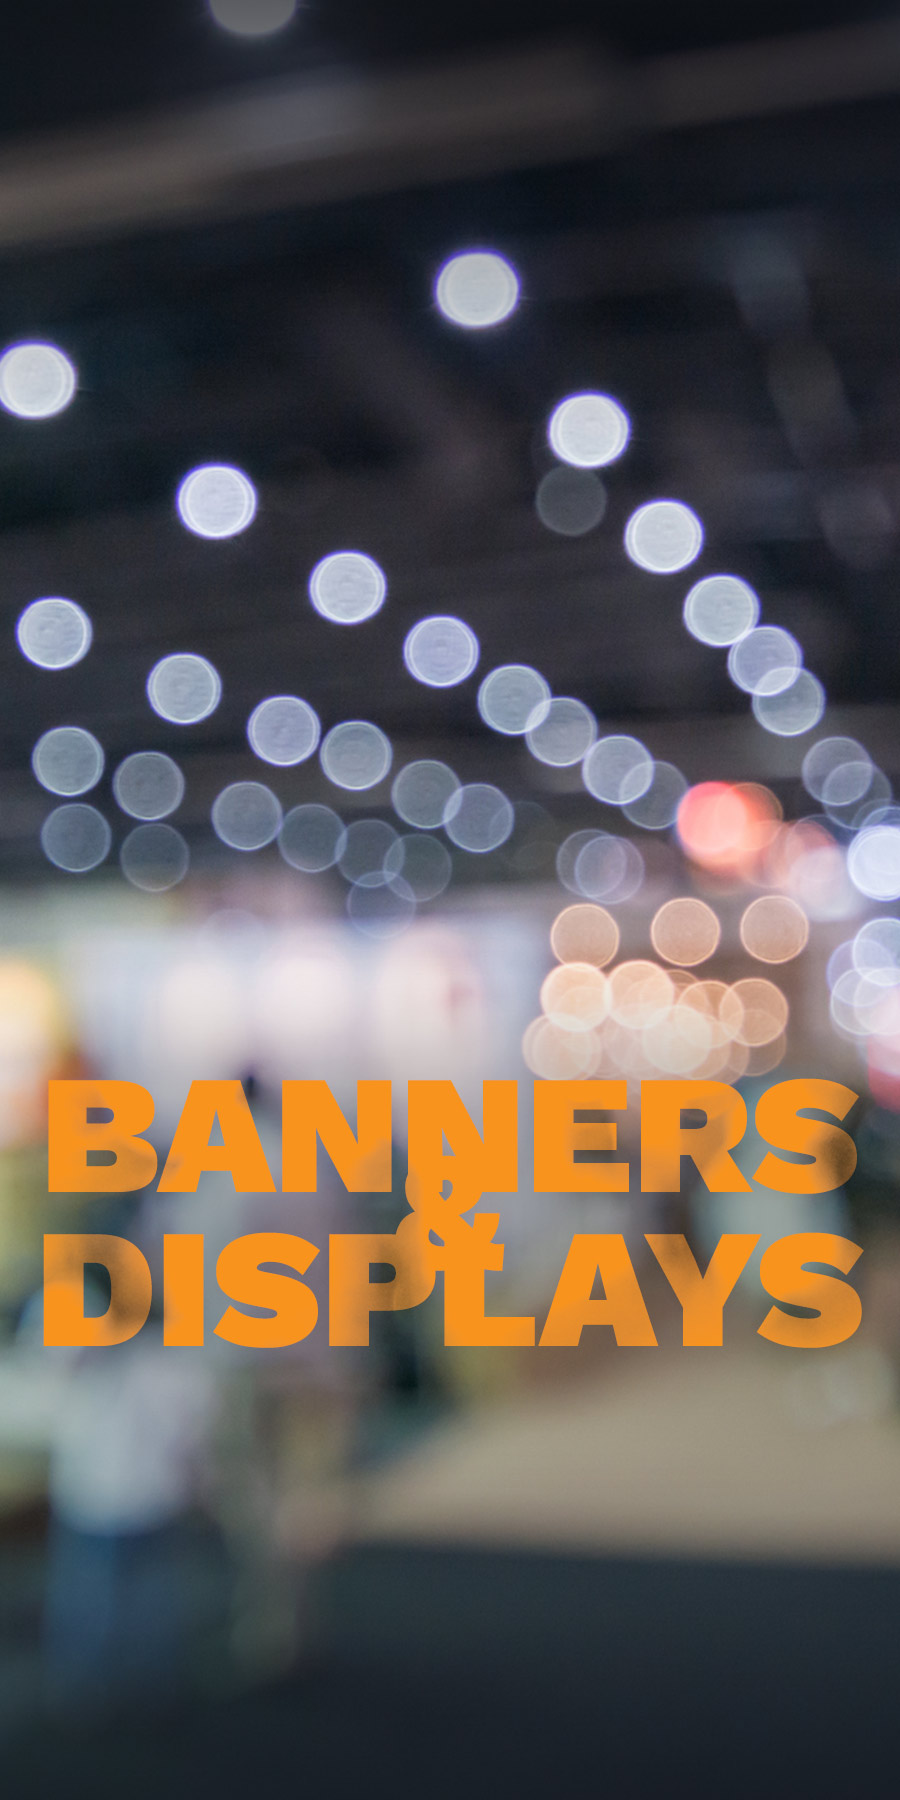 banners and displays